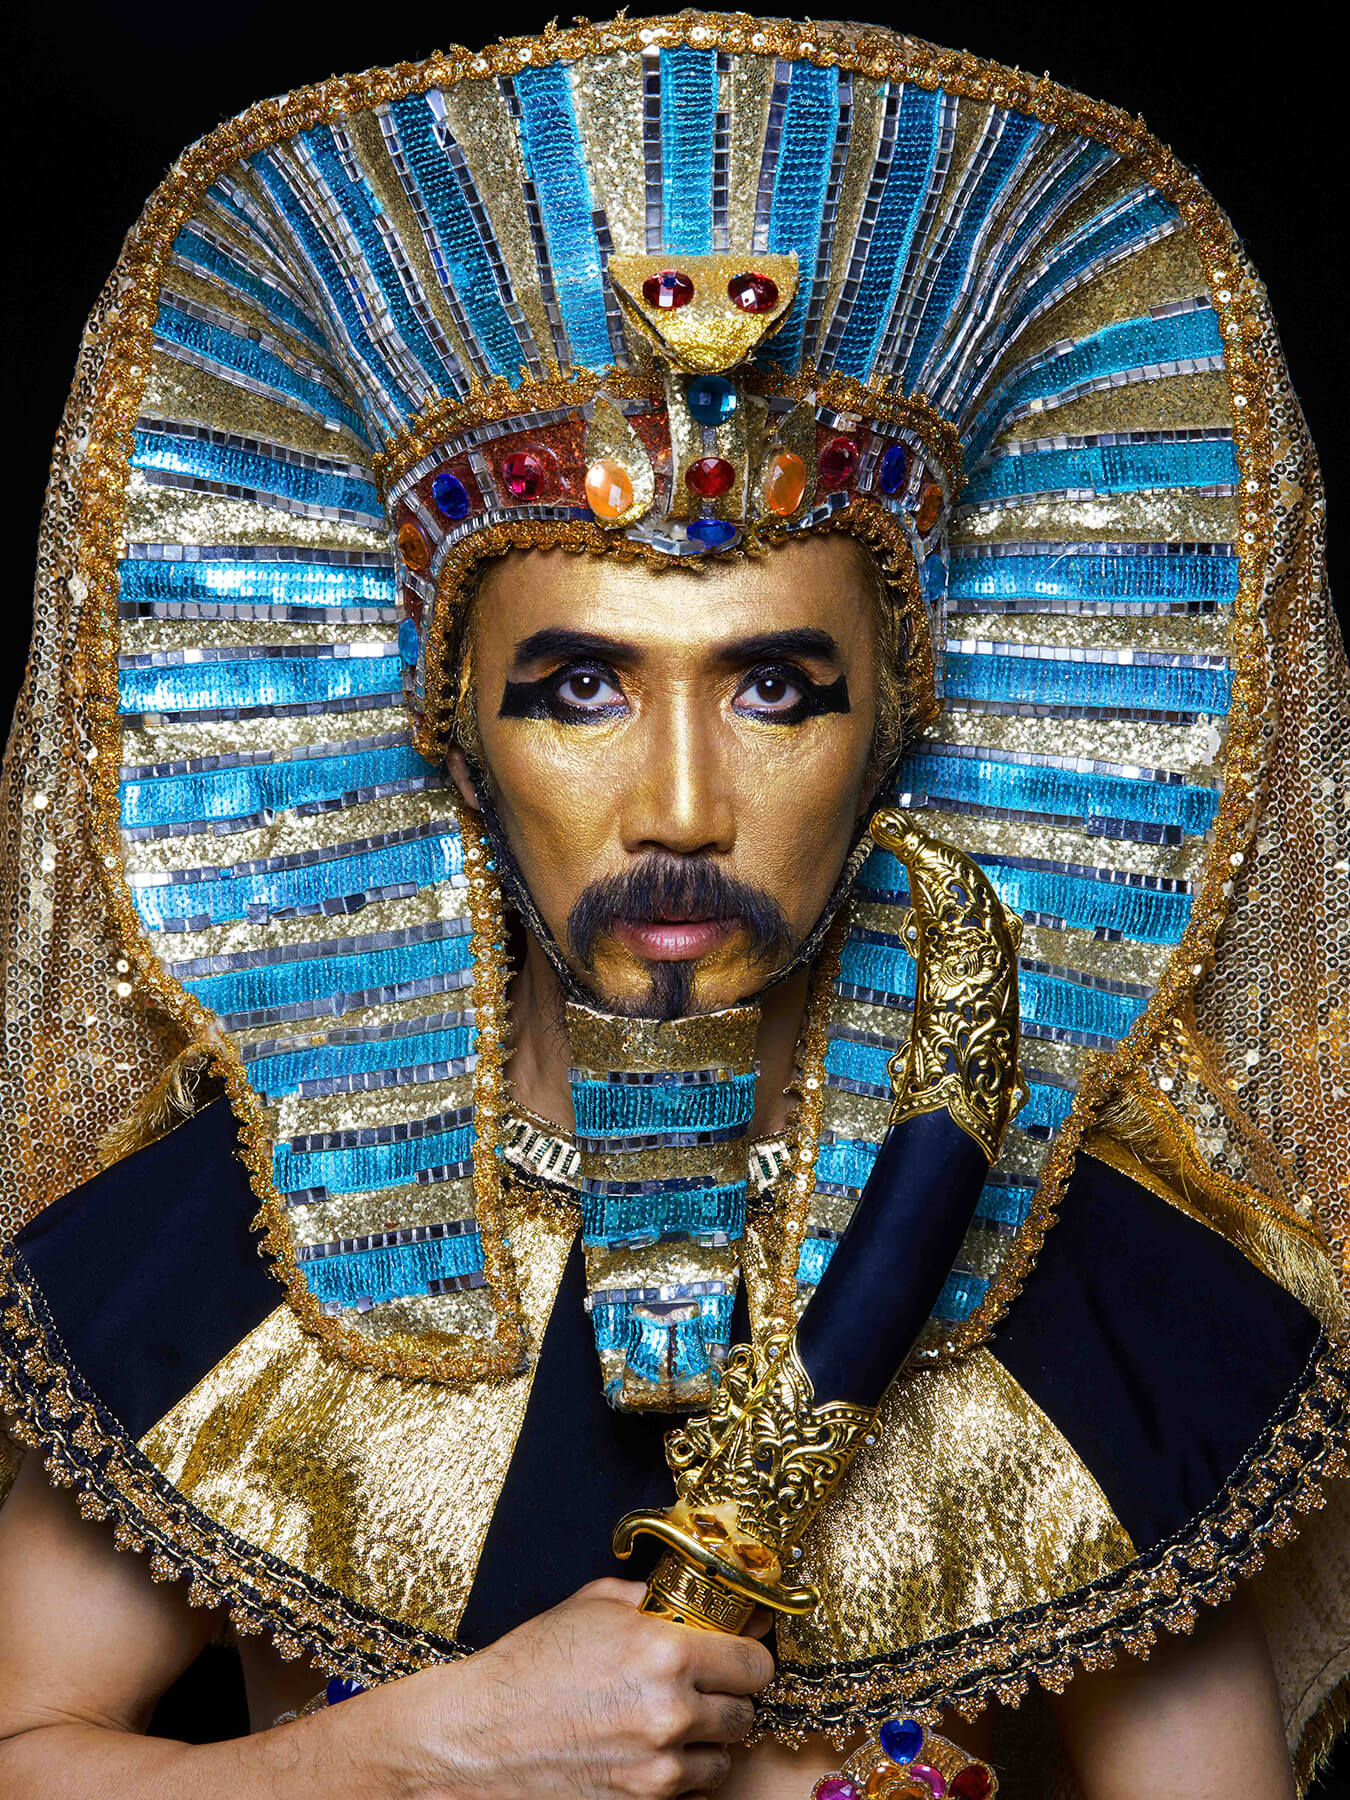 5 Nov 2017 Derong is elaborately styled as Pharaoh King Tut